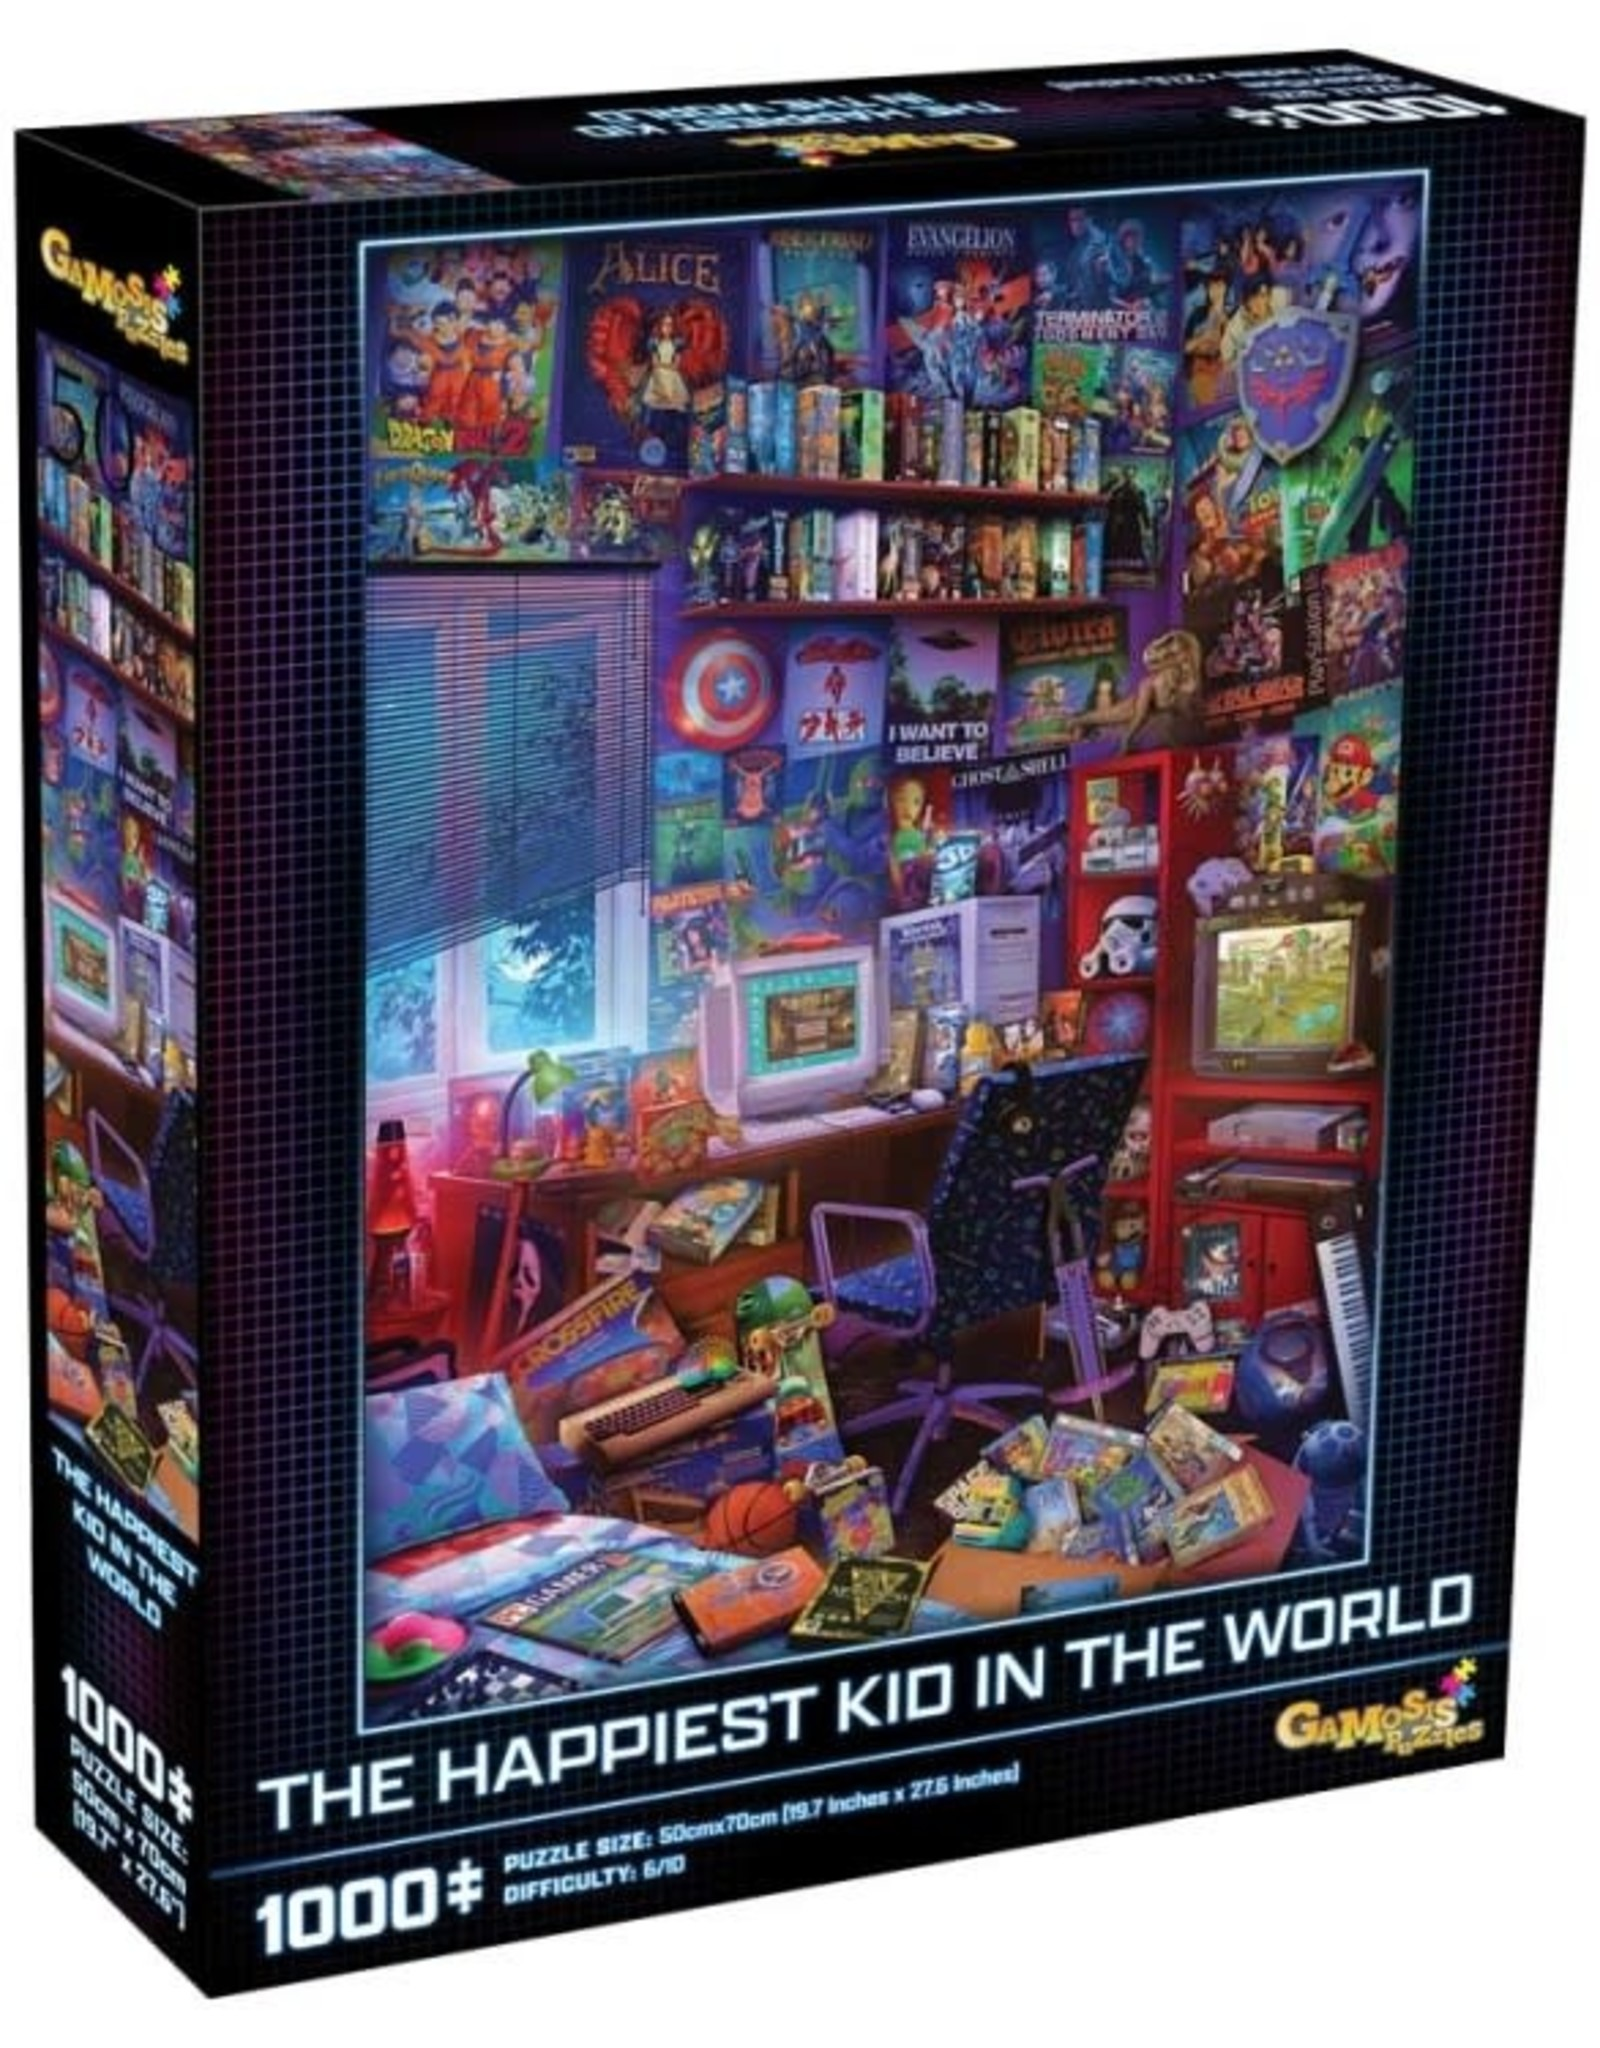 Mchezo 1000pc puzzle The Happiest Kid in the World [preorder]